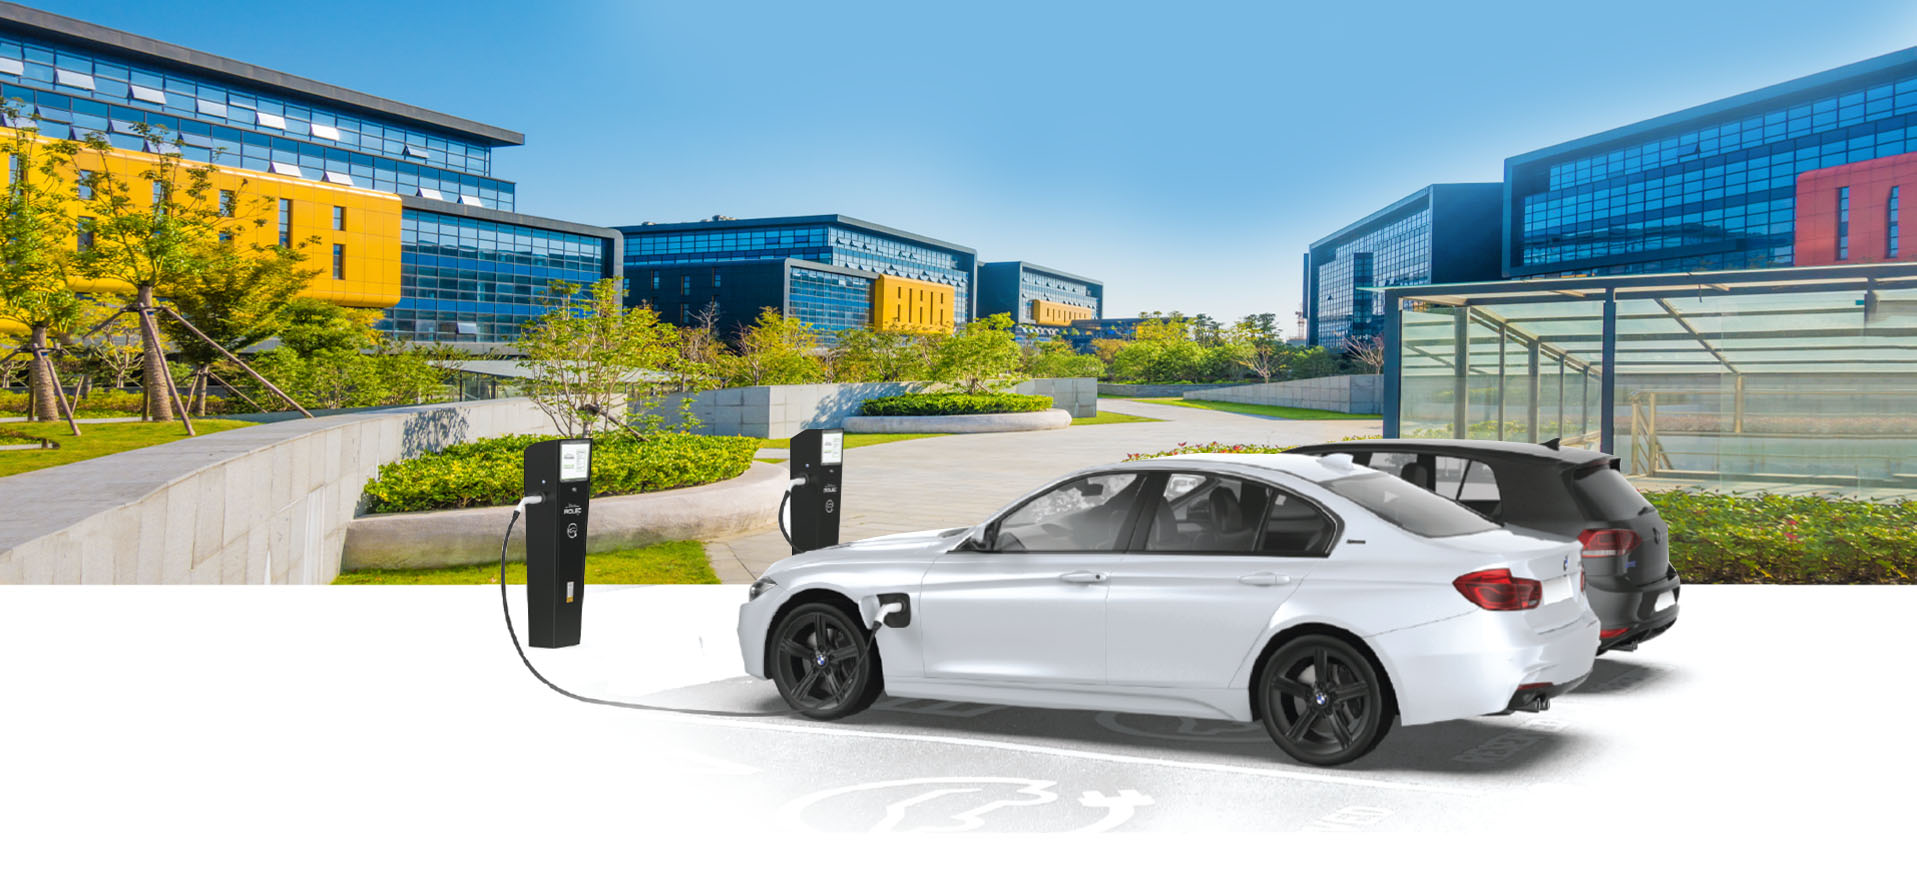 Commercial Work place Electric Vehicle Charging Stations